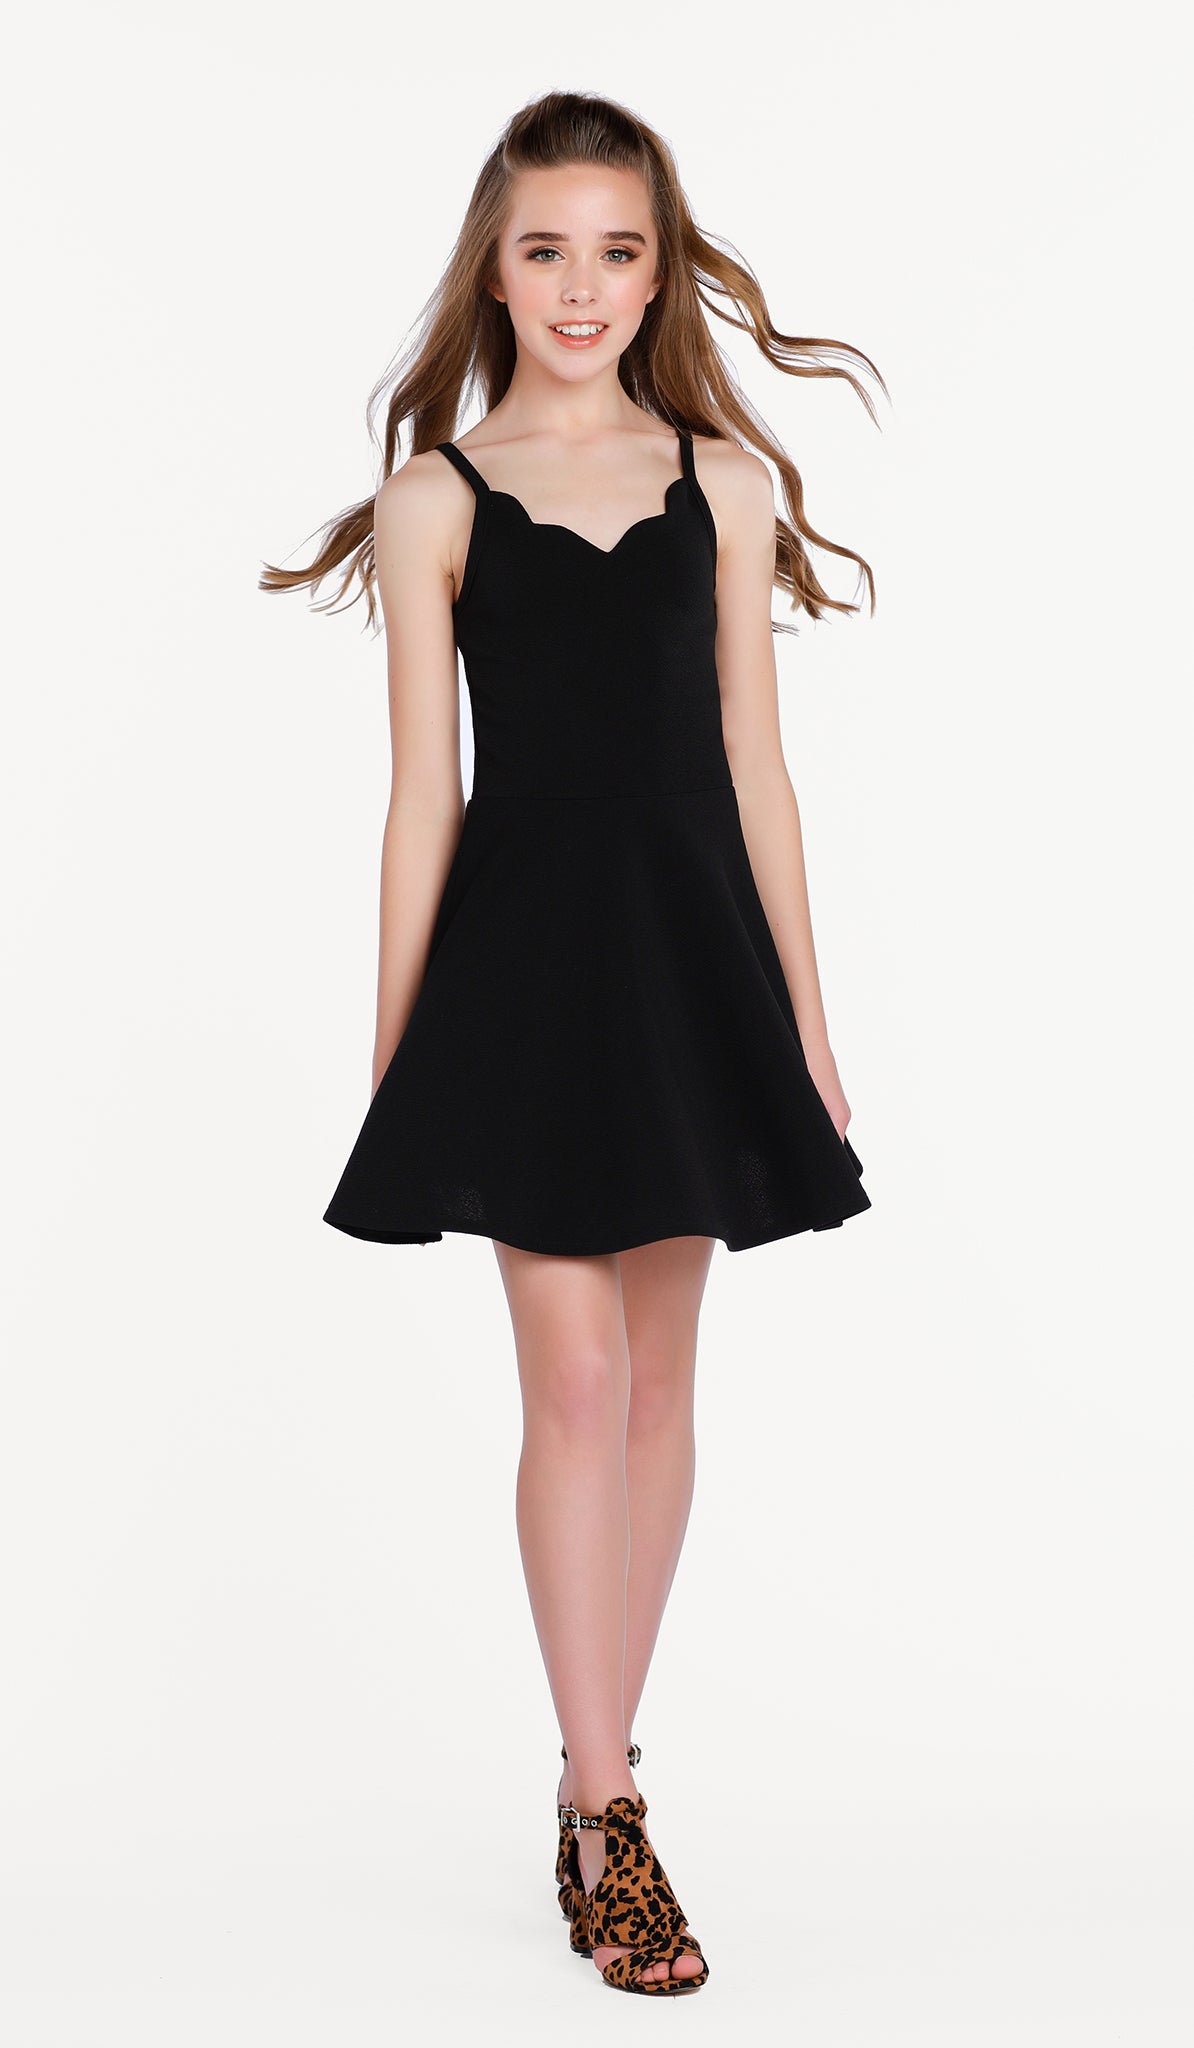 The Sally Miller Laynie Dress in Black - Black textured stretch knit fit and flare dress with scallop detail